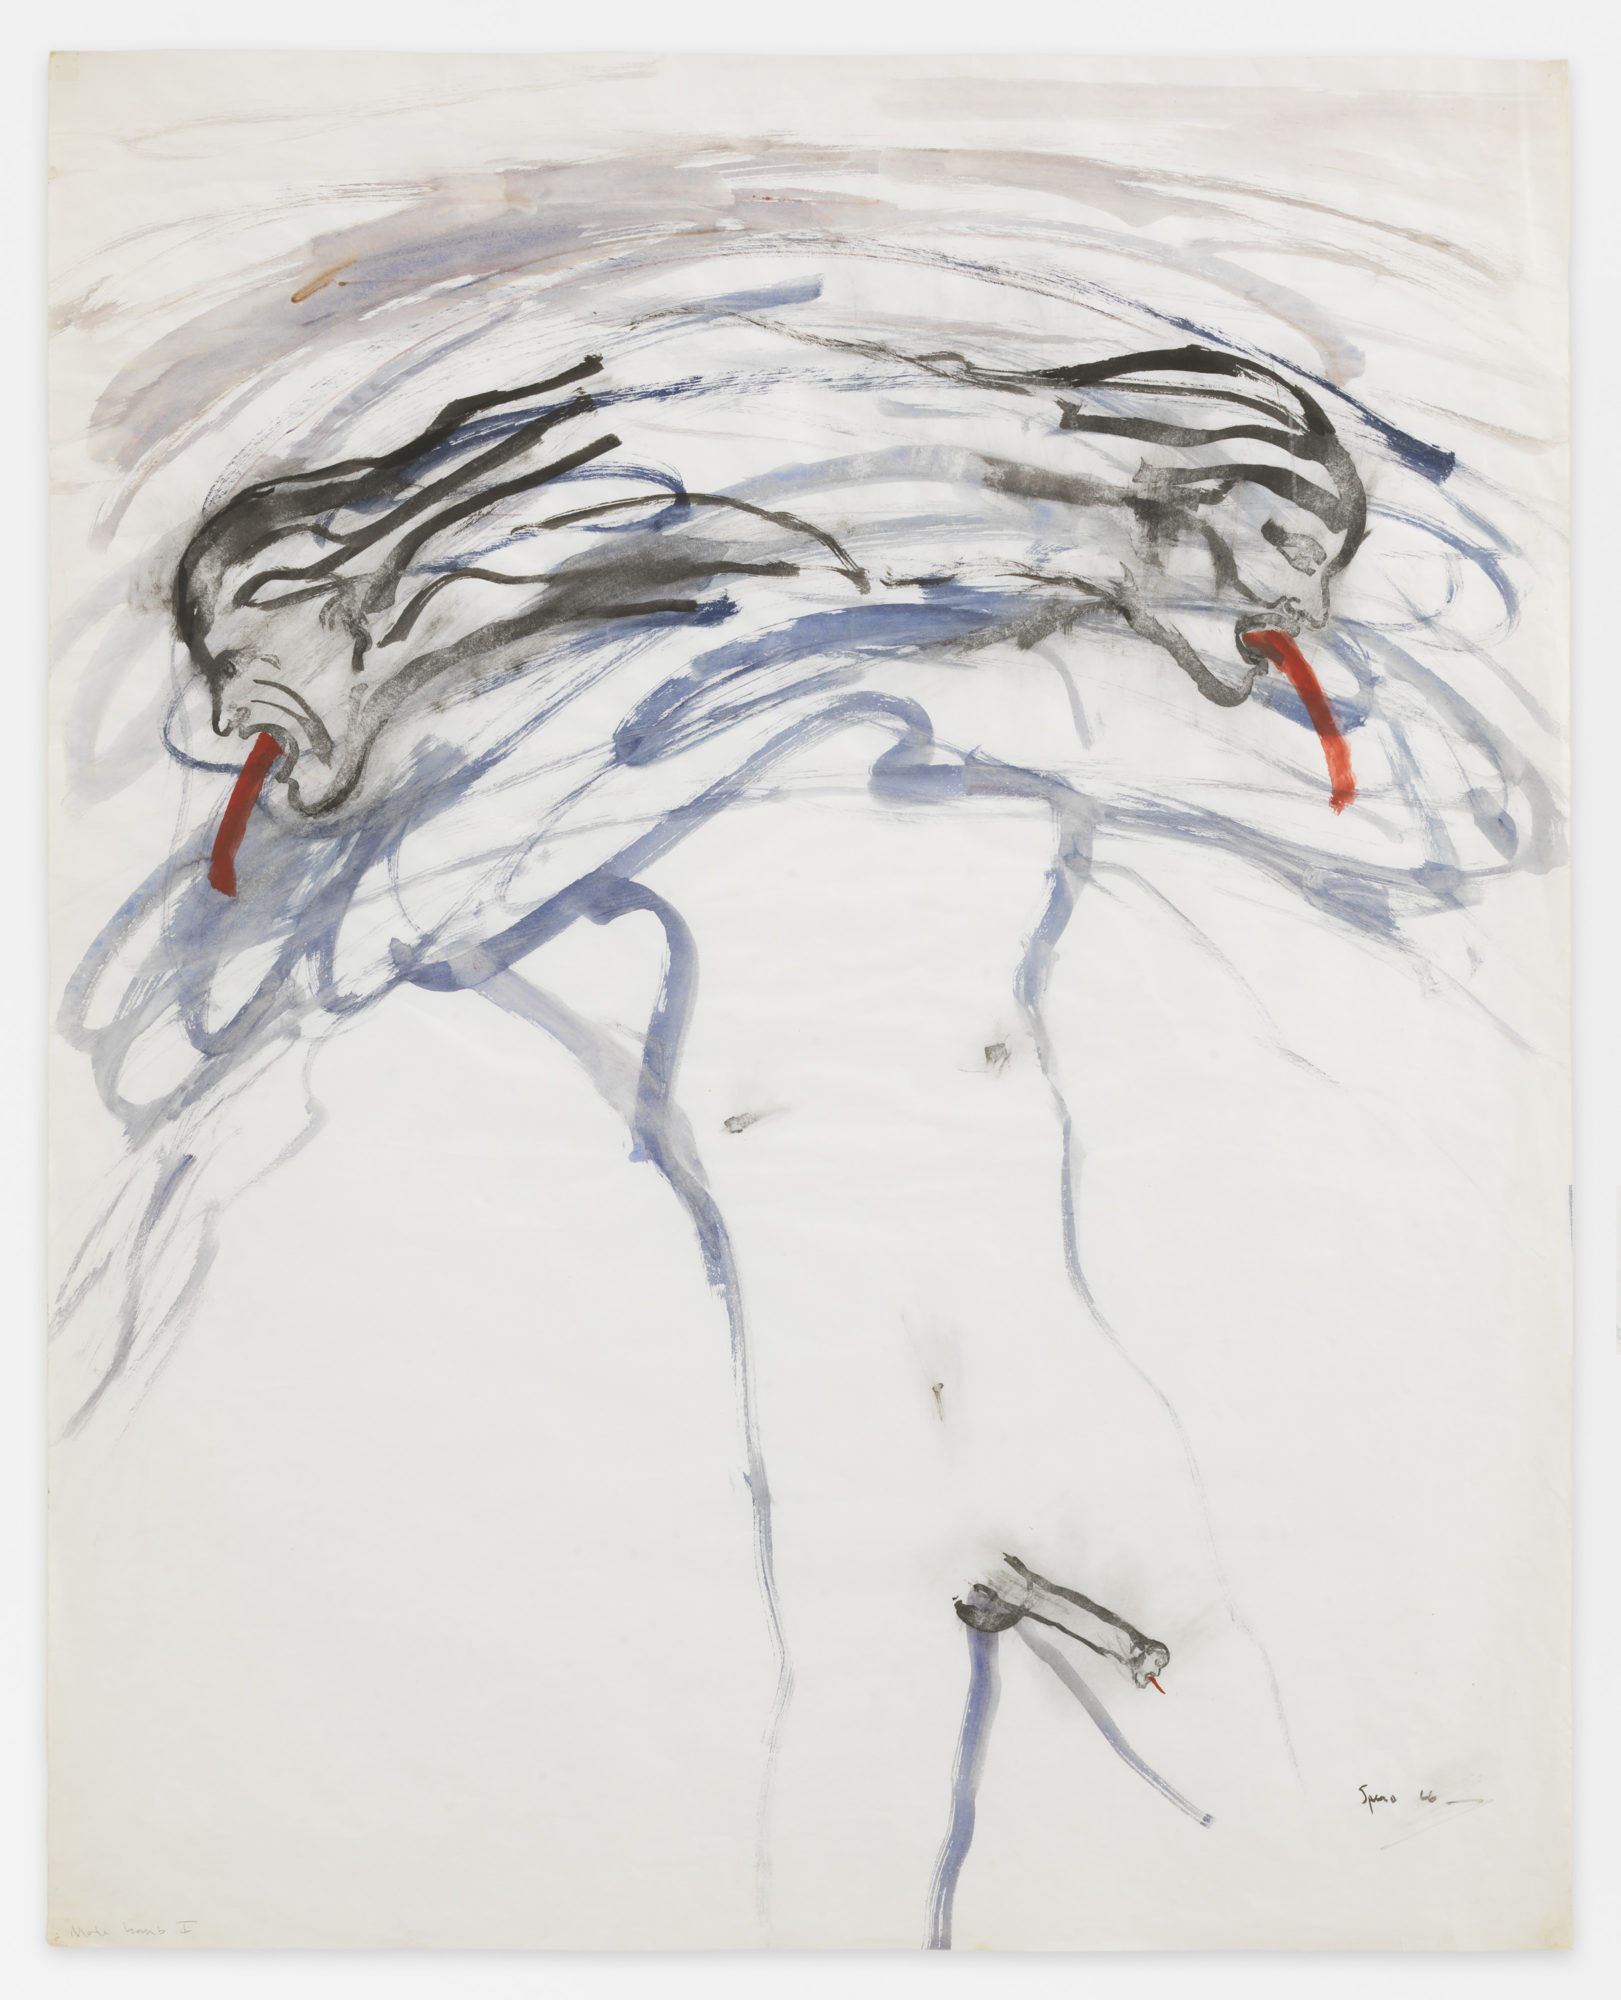 Nancy Spero. Male Bomb I. 1966 . Gouache and ink on paper . 86.4 x 68.6 cm (34 x 27 inches). © 2019 The Nancy Spero and Leon Golub Foundation for the Arts/Licensed by VAGA at ARS, NY, courtesy Galerie Lelong & Co. Photo: Christopher Burke Studio